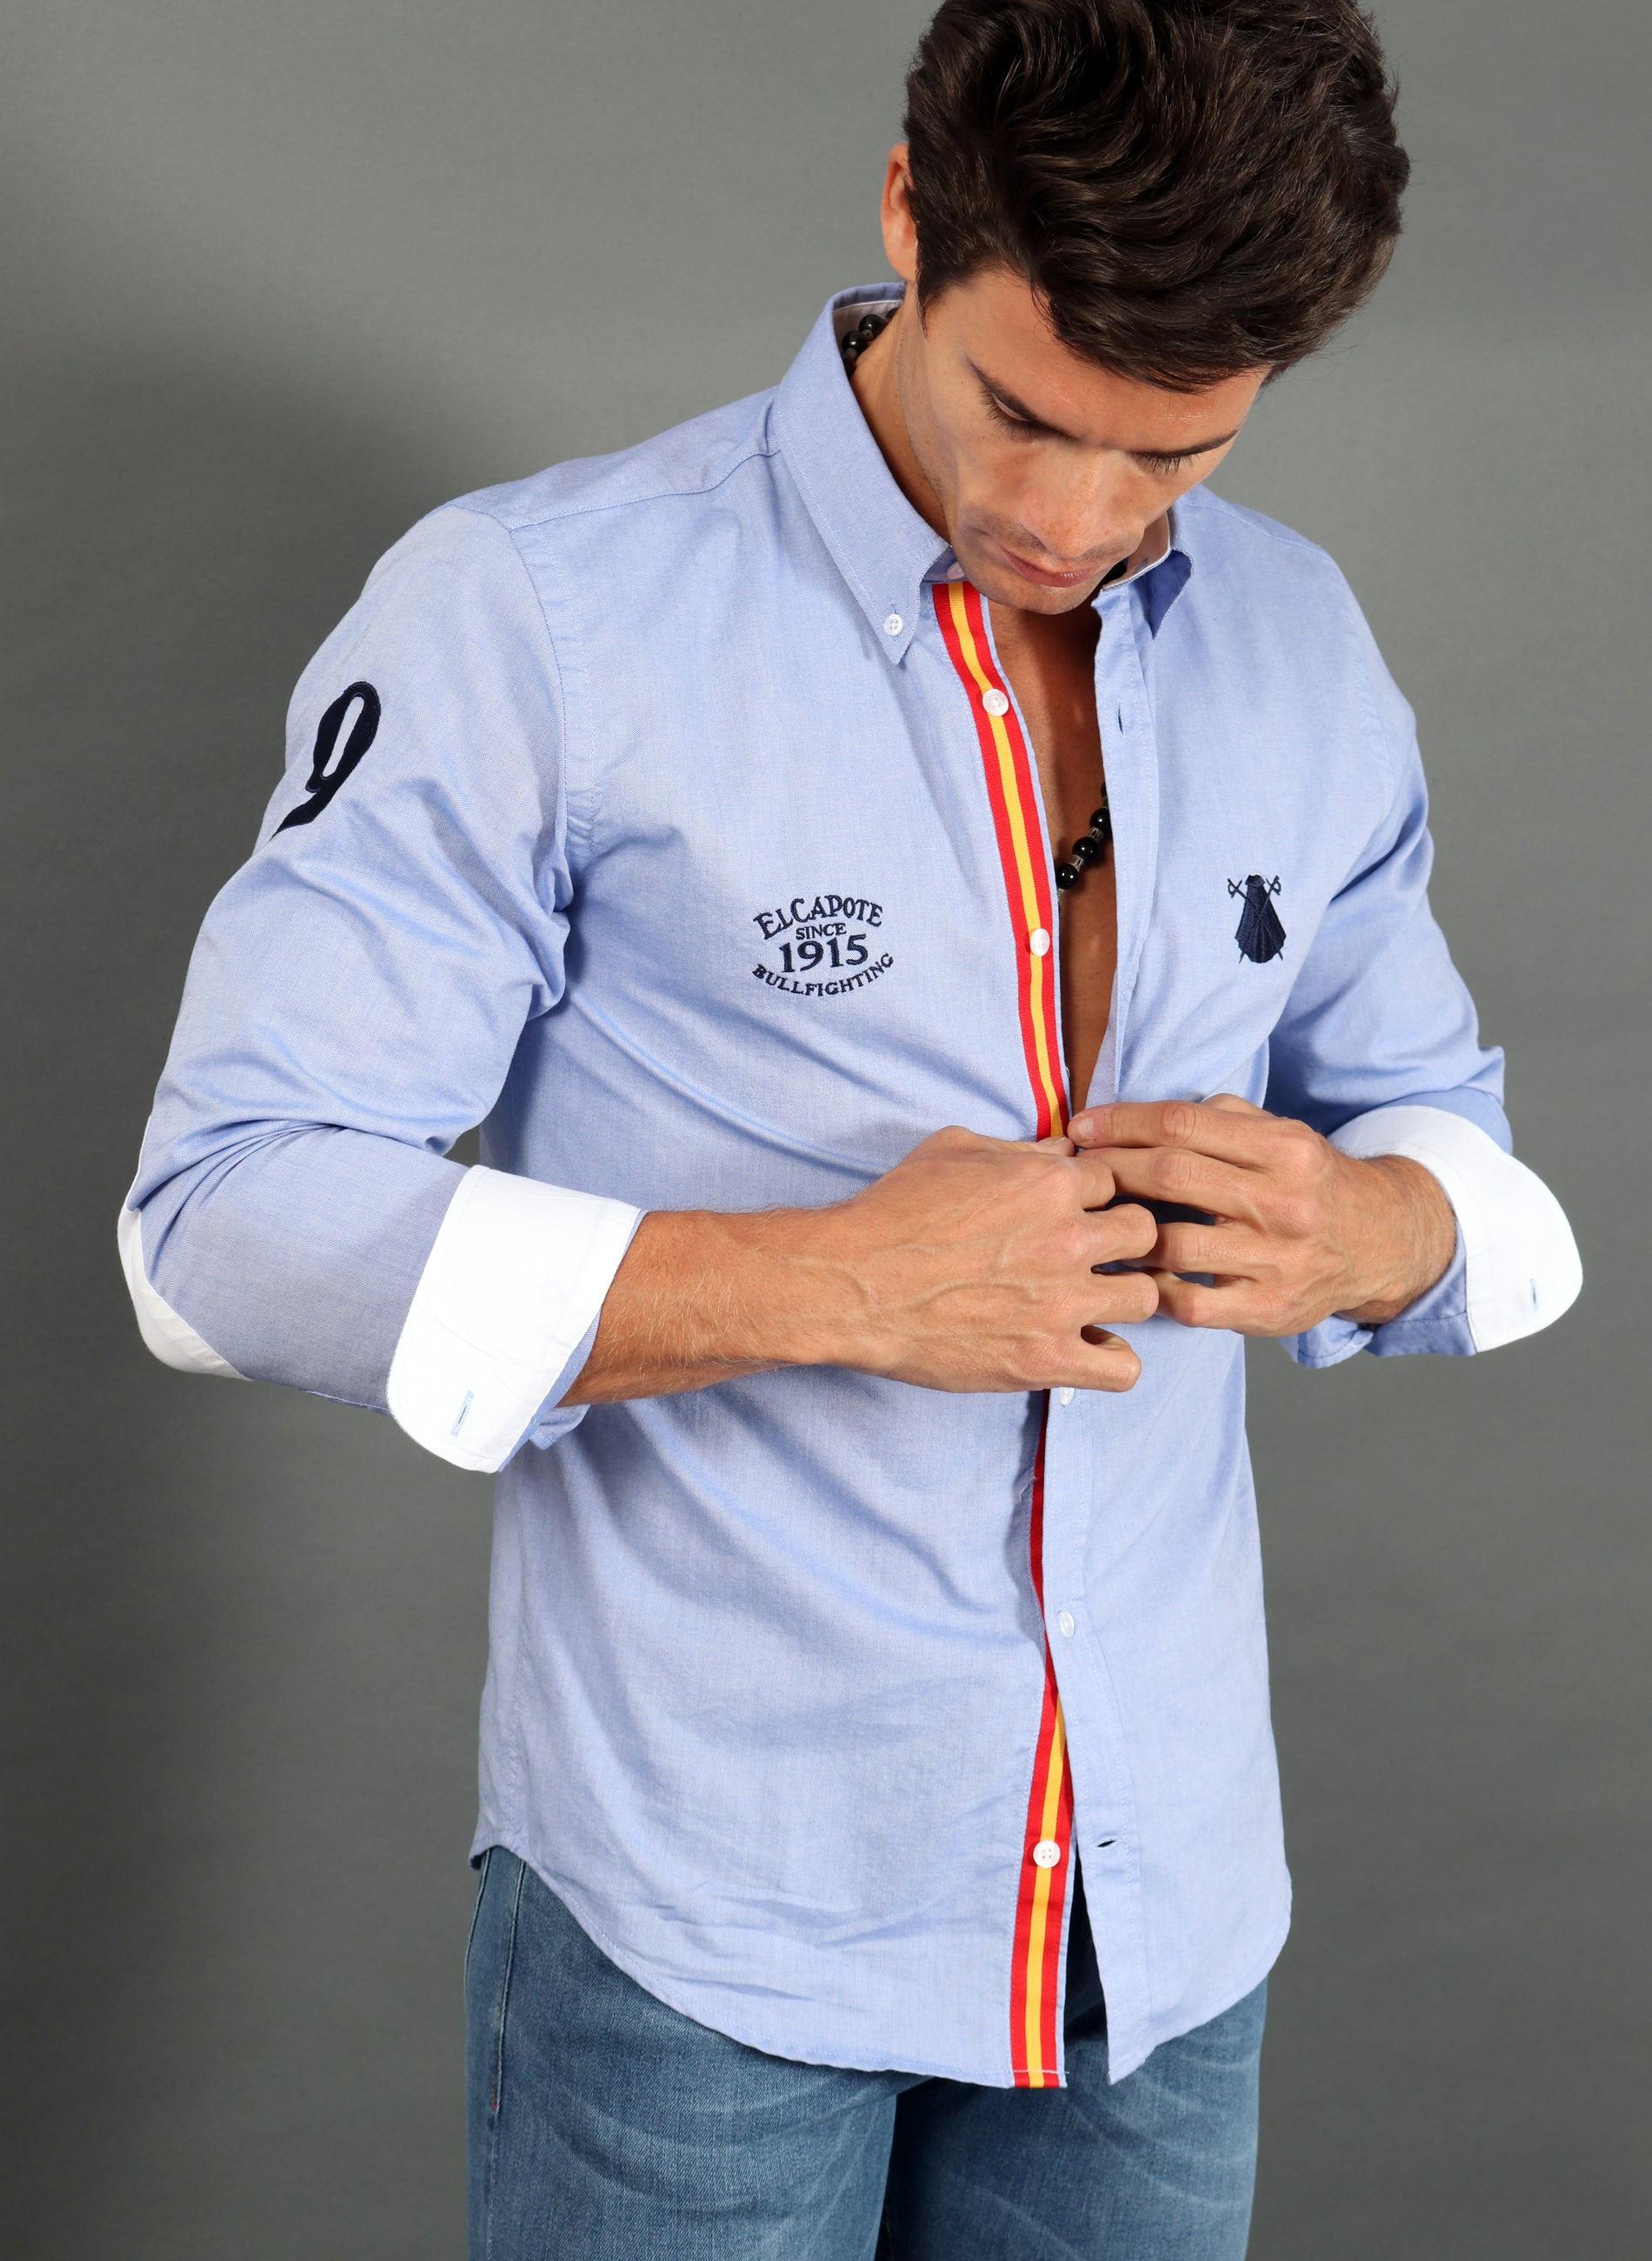 Men's Regata Spain Blue Oxford Shirt